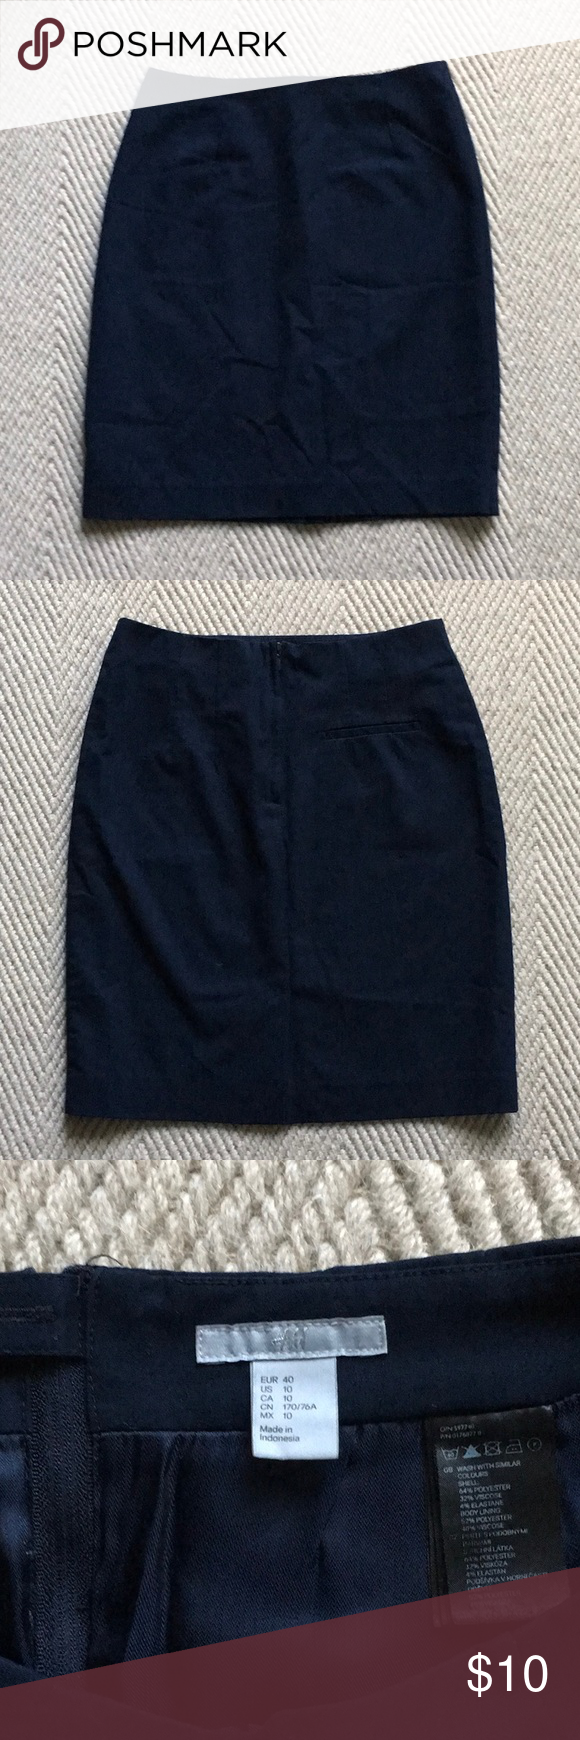 Fashion style Navy short blue pencil skirt for woman